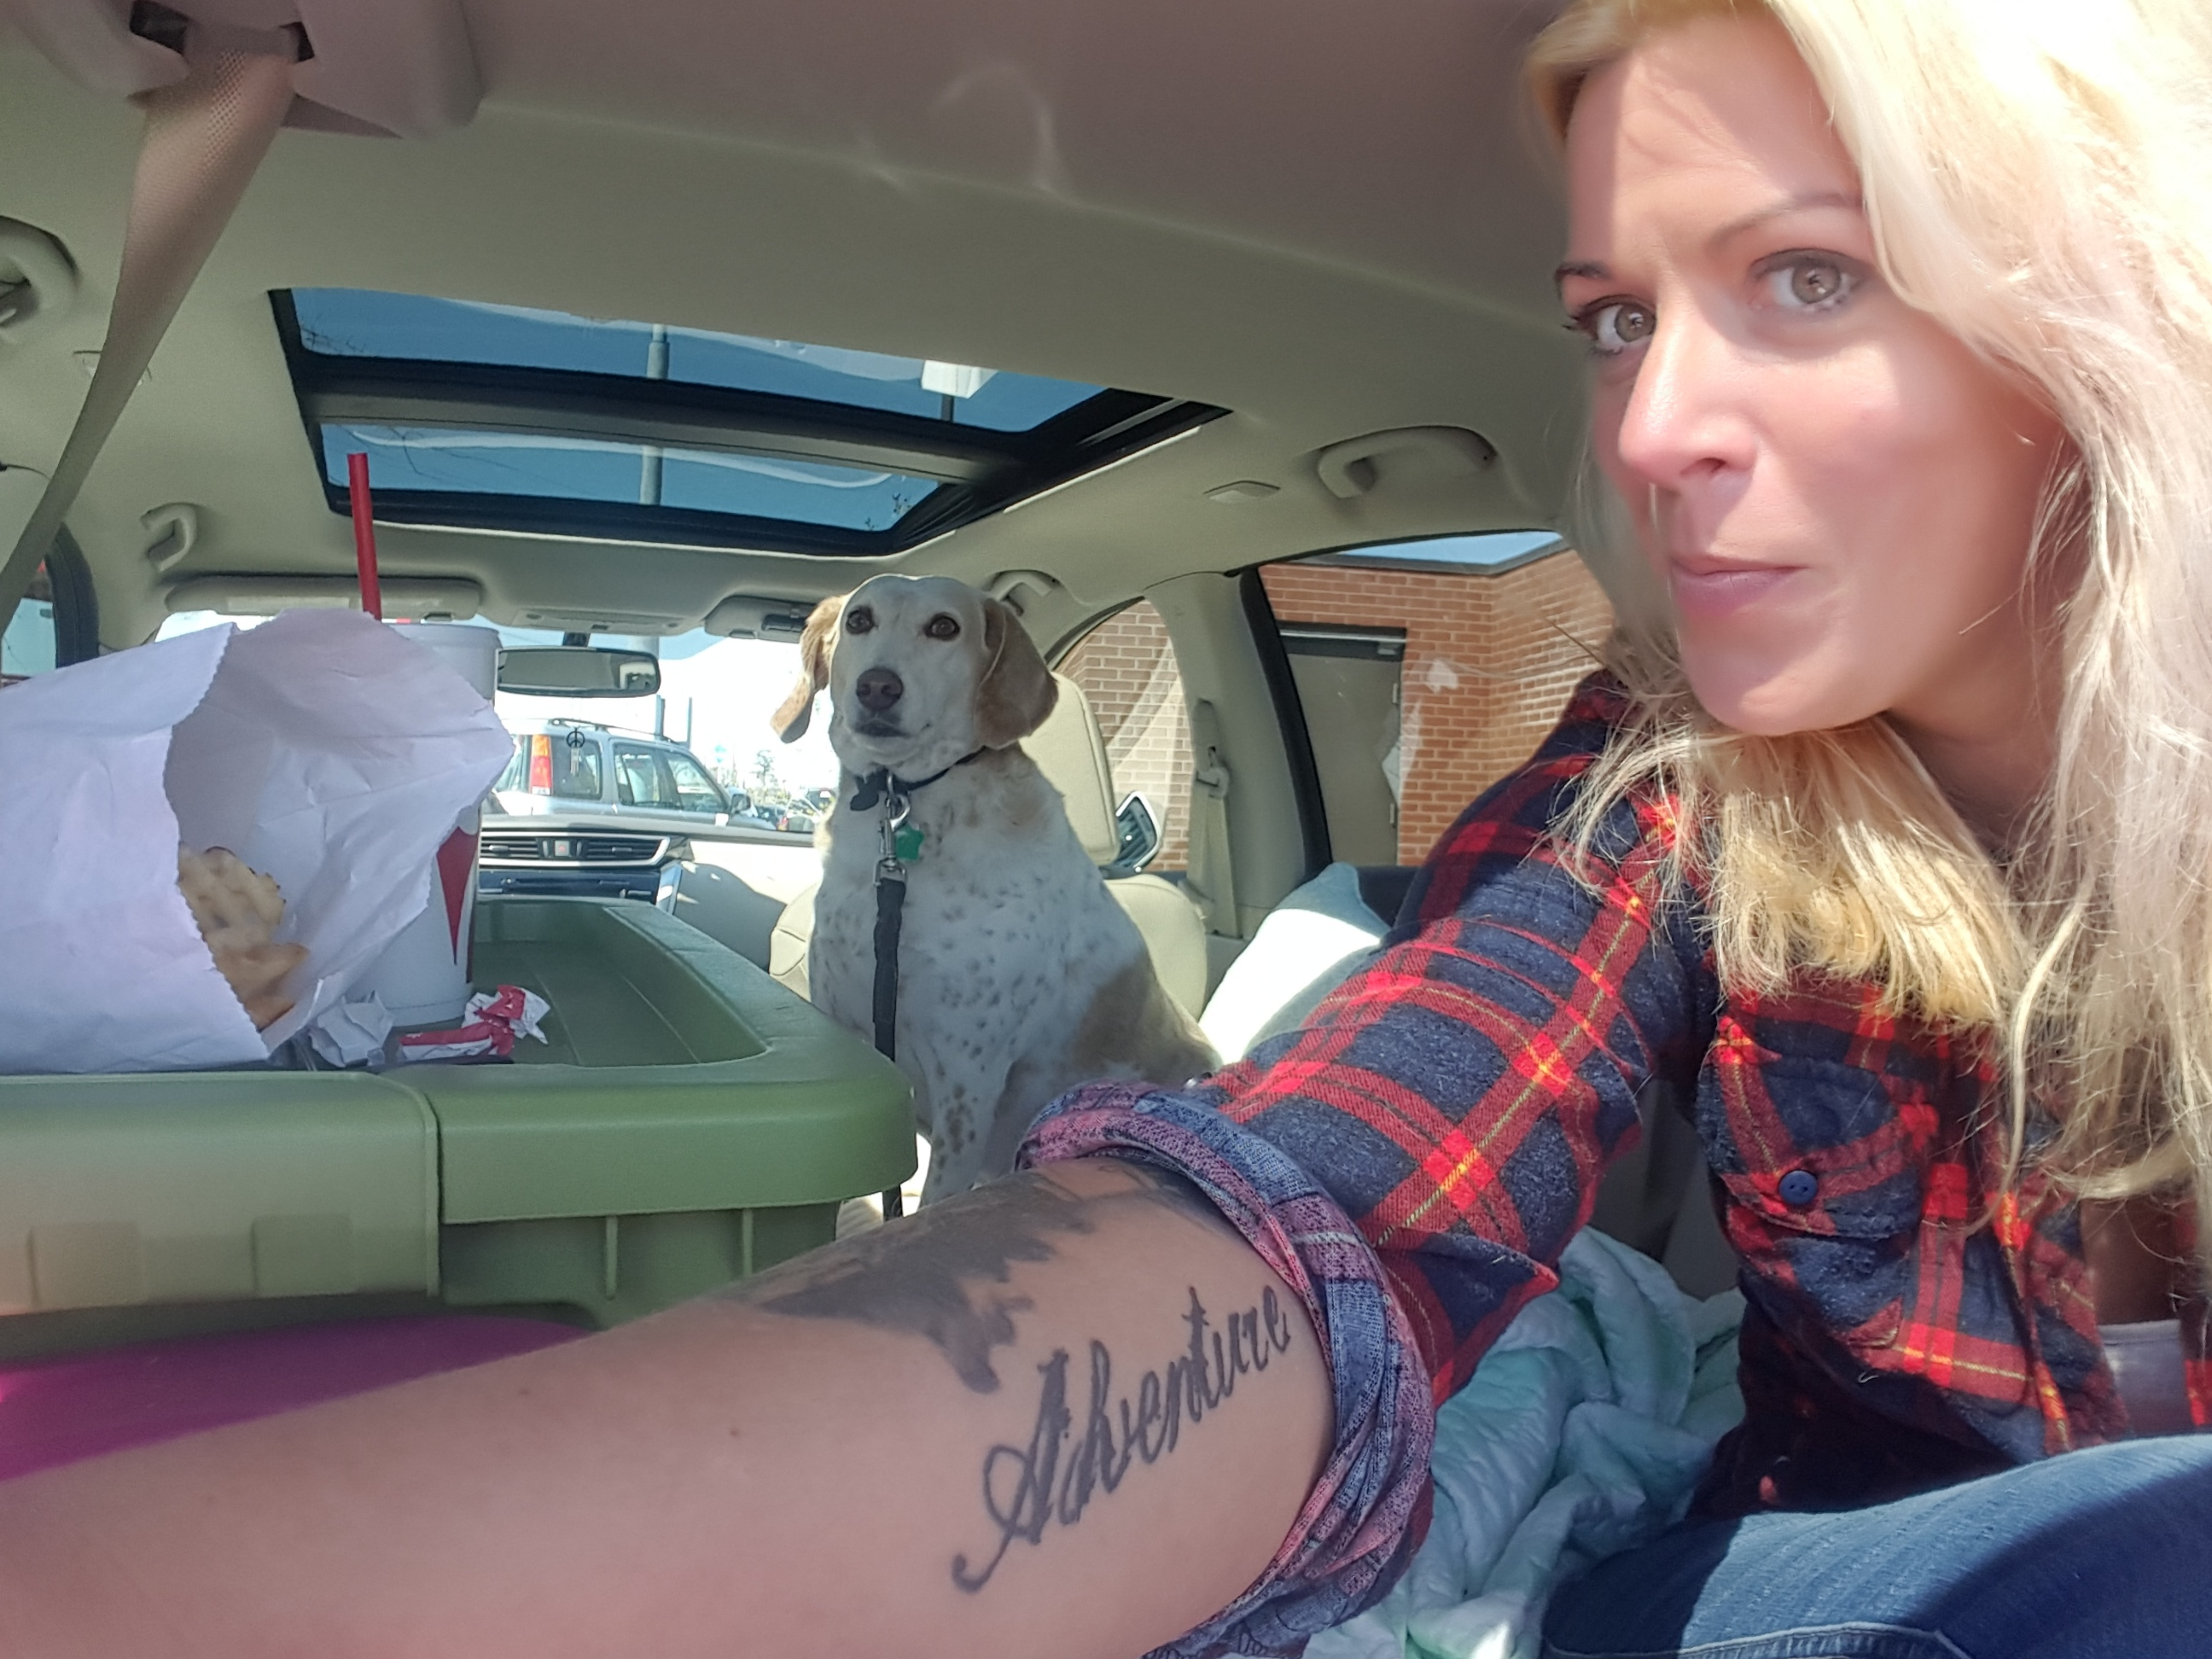 We had quite a few picnics in the back of the car. Can you tell she full expects me to share my french fries with her?